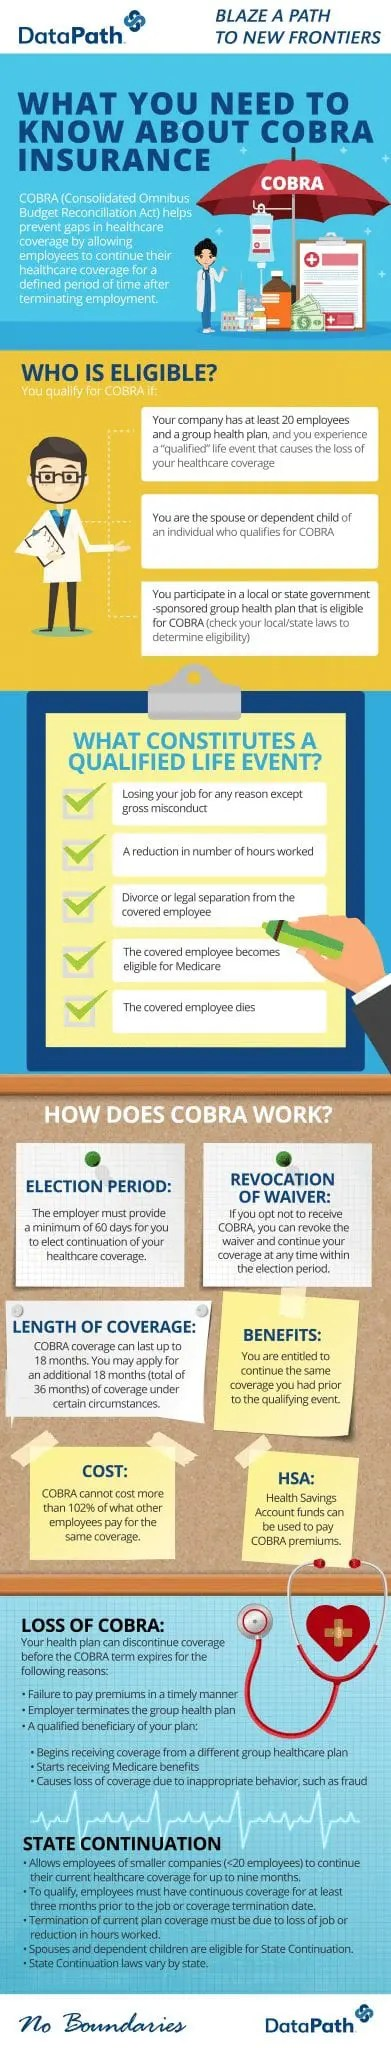 Infographic: COBRA insurance need-to-knows